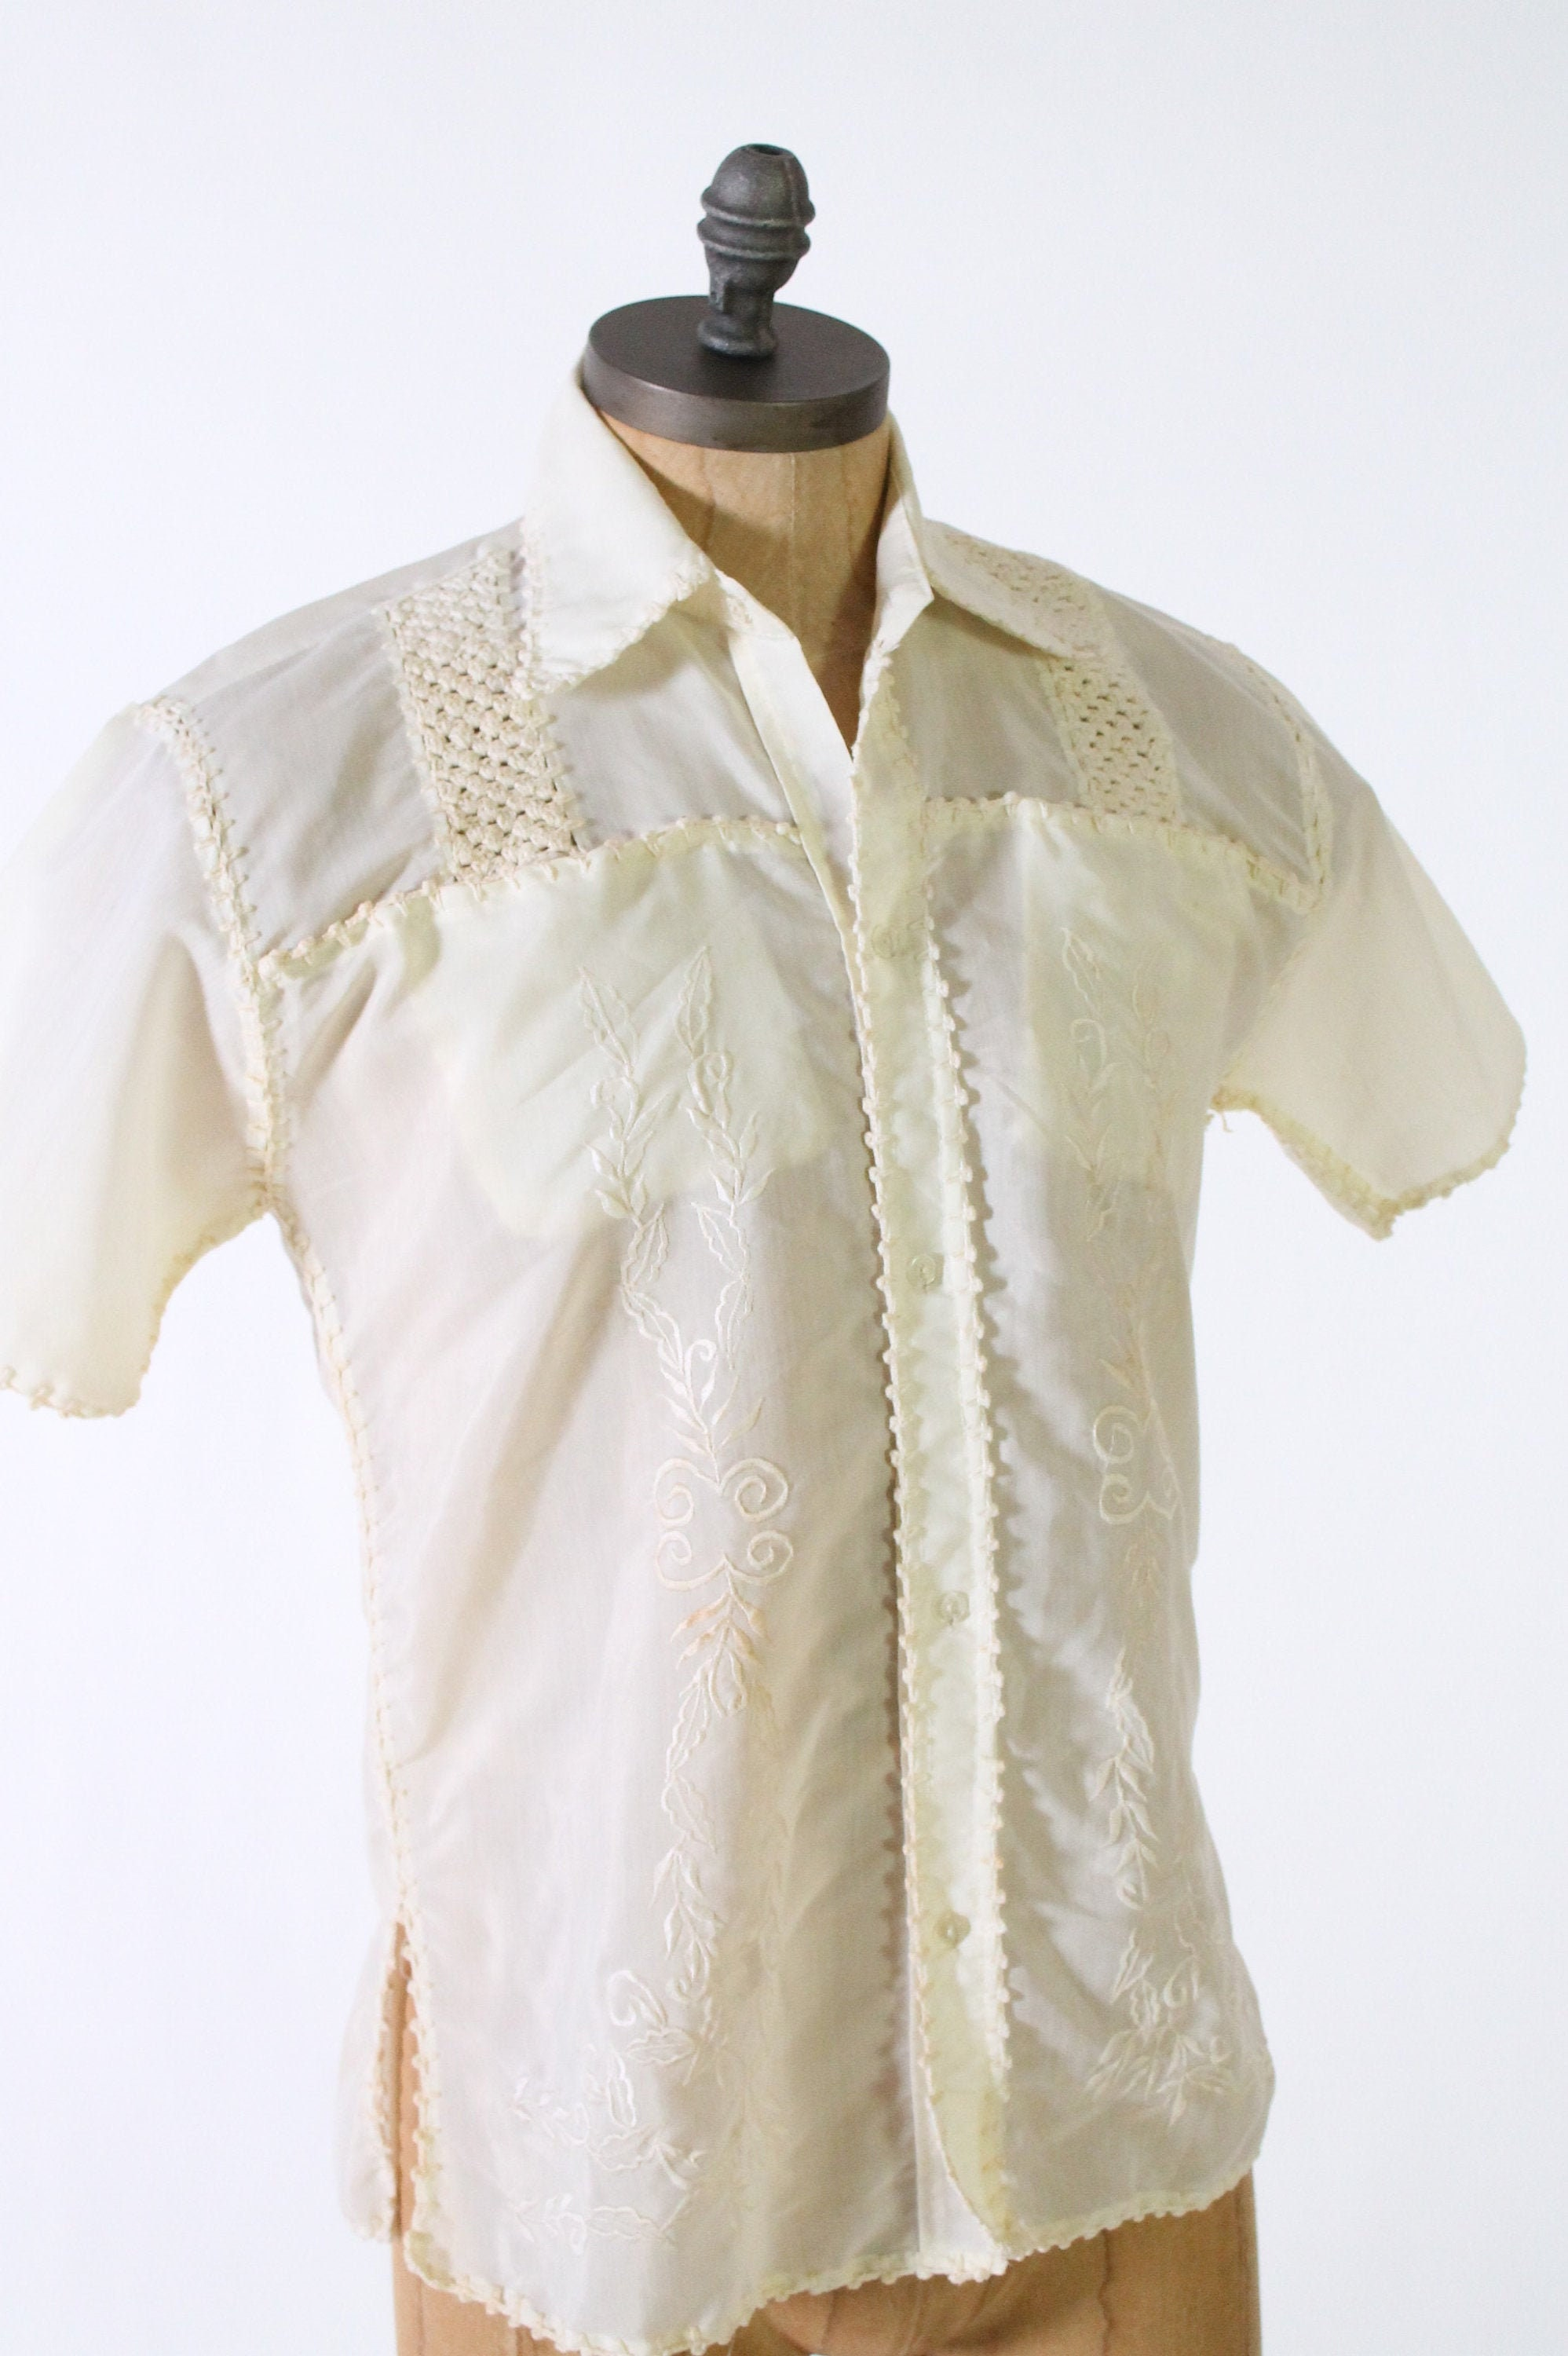 1960s – 70s Men's Ties | Skinny Ties, Slim Ties Guayabera Embroidered Shirt White Mexican Beach Wedding Vintage 1960S Mens Button Down $19.95 AT vintagedancer.com